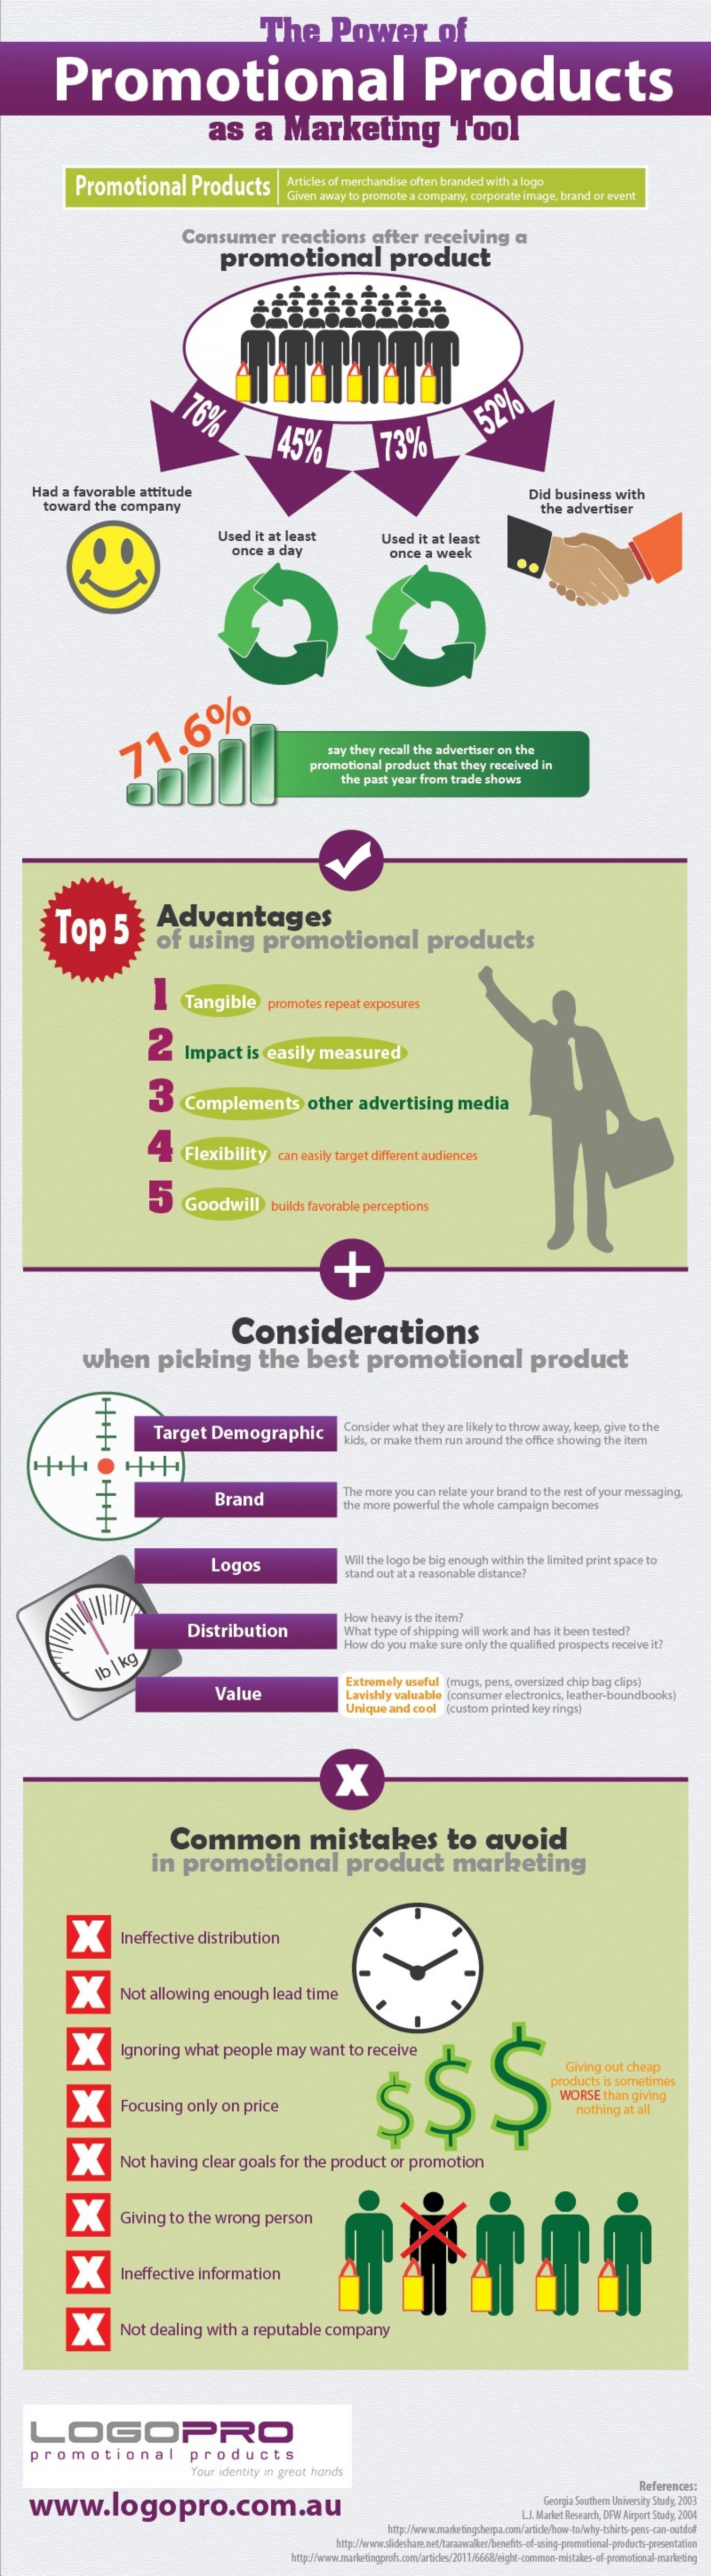 The Power of Promotional Products as a Marketing Tool Infographic